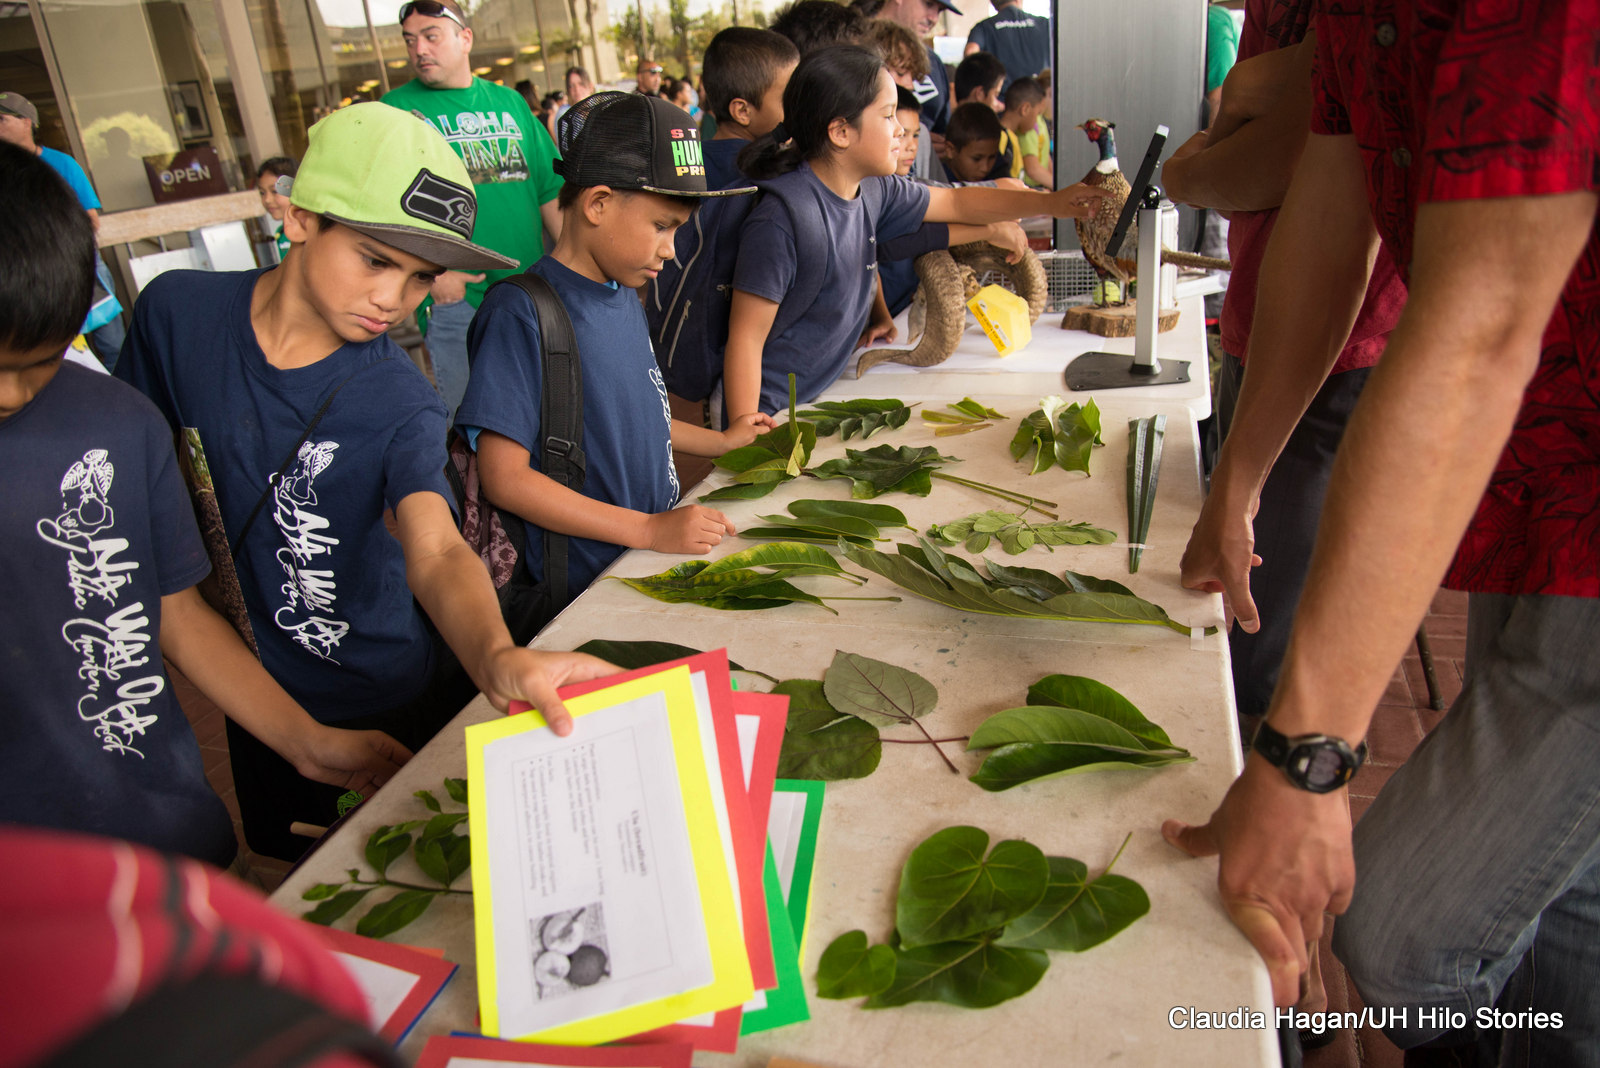 Children visiting a booth with a display of greenery and leaves. The boys all have the same colored t-shirt on.